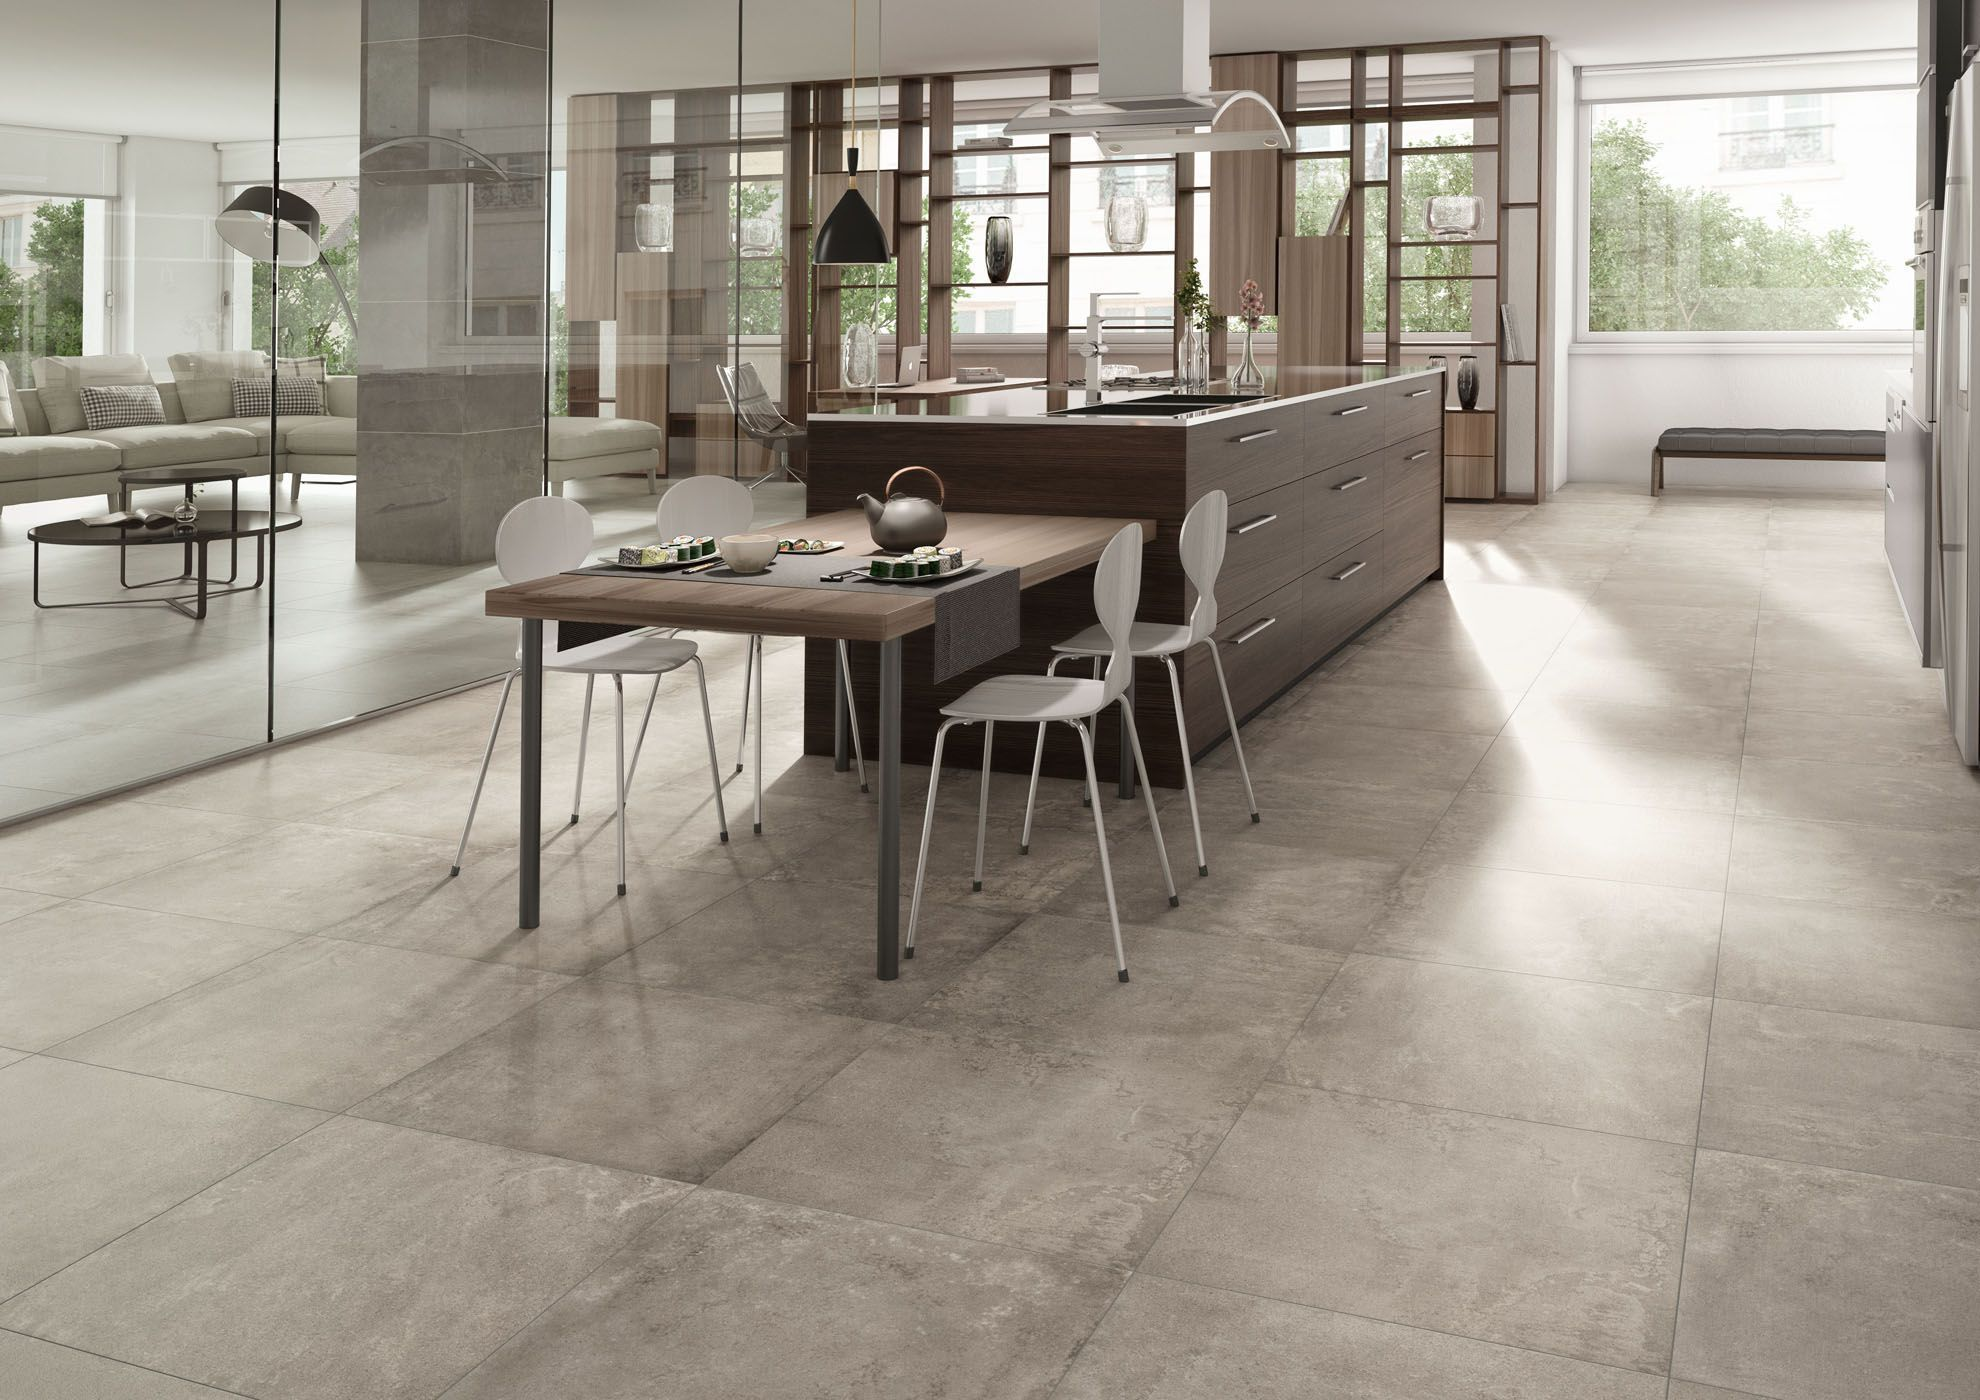 Indoor tile floor porcelain stoneware plain chicago indoor tile floor porcelain stoneware plain chicago pavigres ceramicas dailygadgetfo Gallery